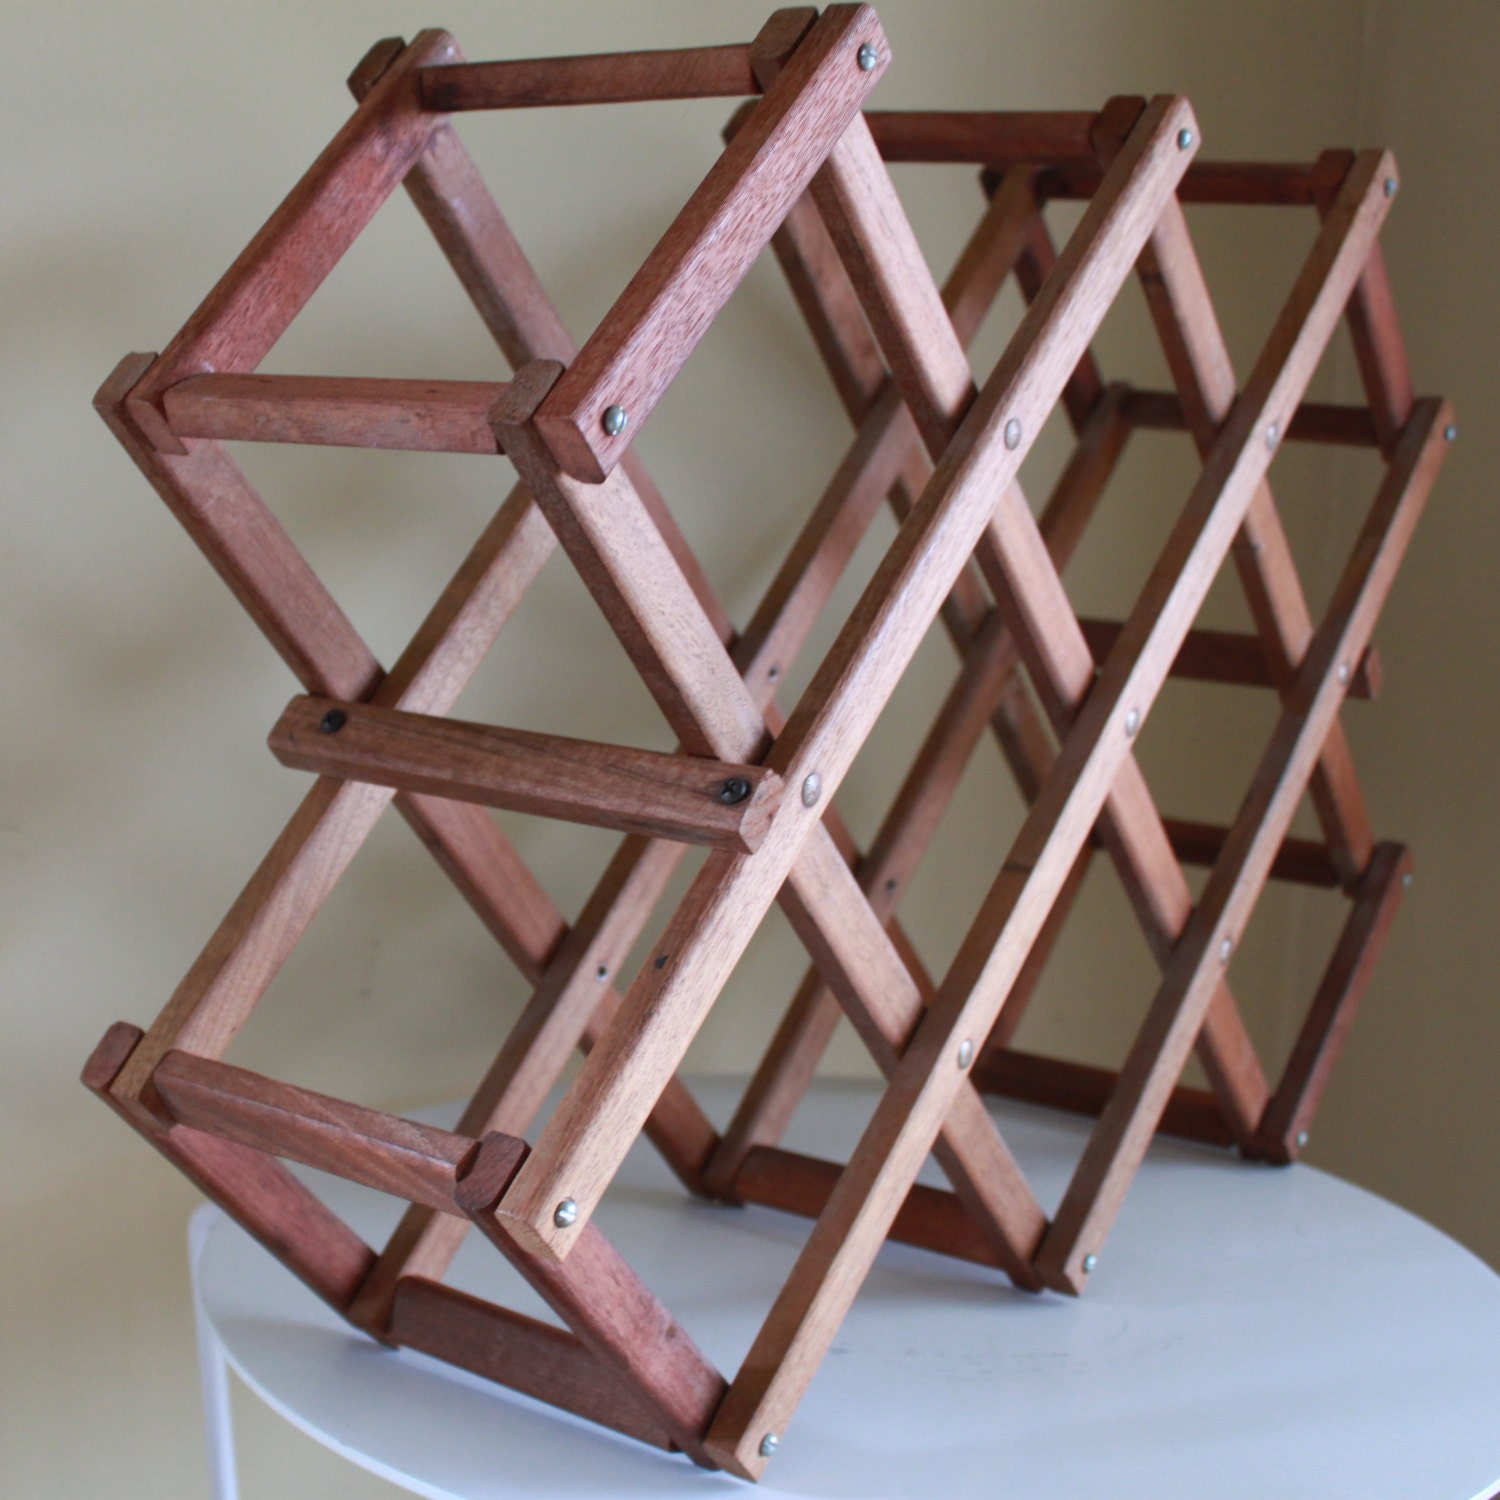 Modern Retro Wood Folding Wine Rack By Fullcircleretro On Etsy